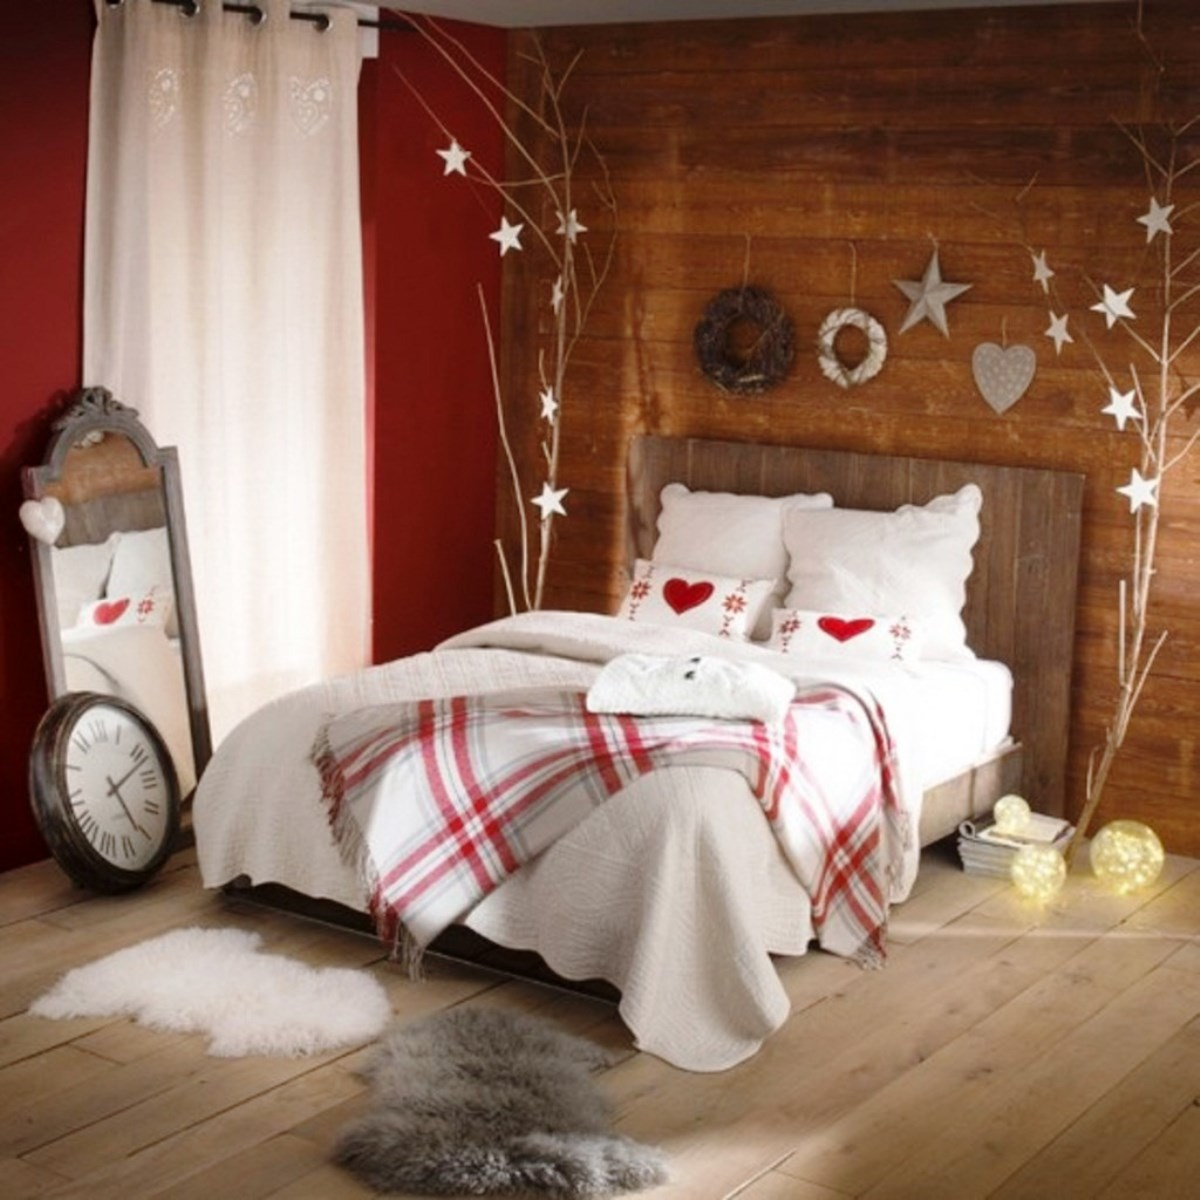 christmas bedroom decor ideas - Christmas Room Decoration Ideas